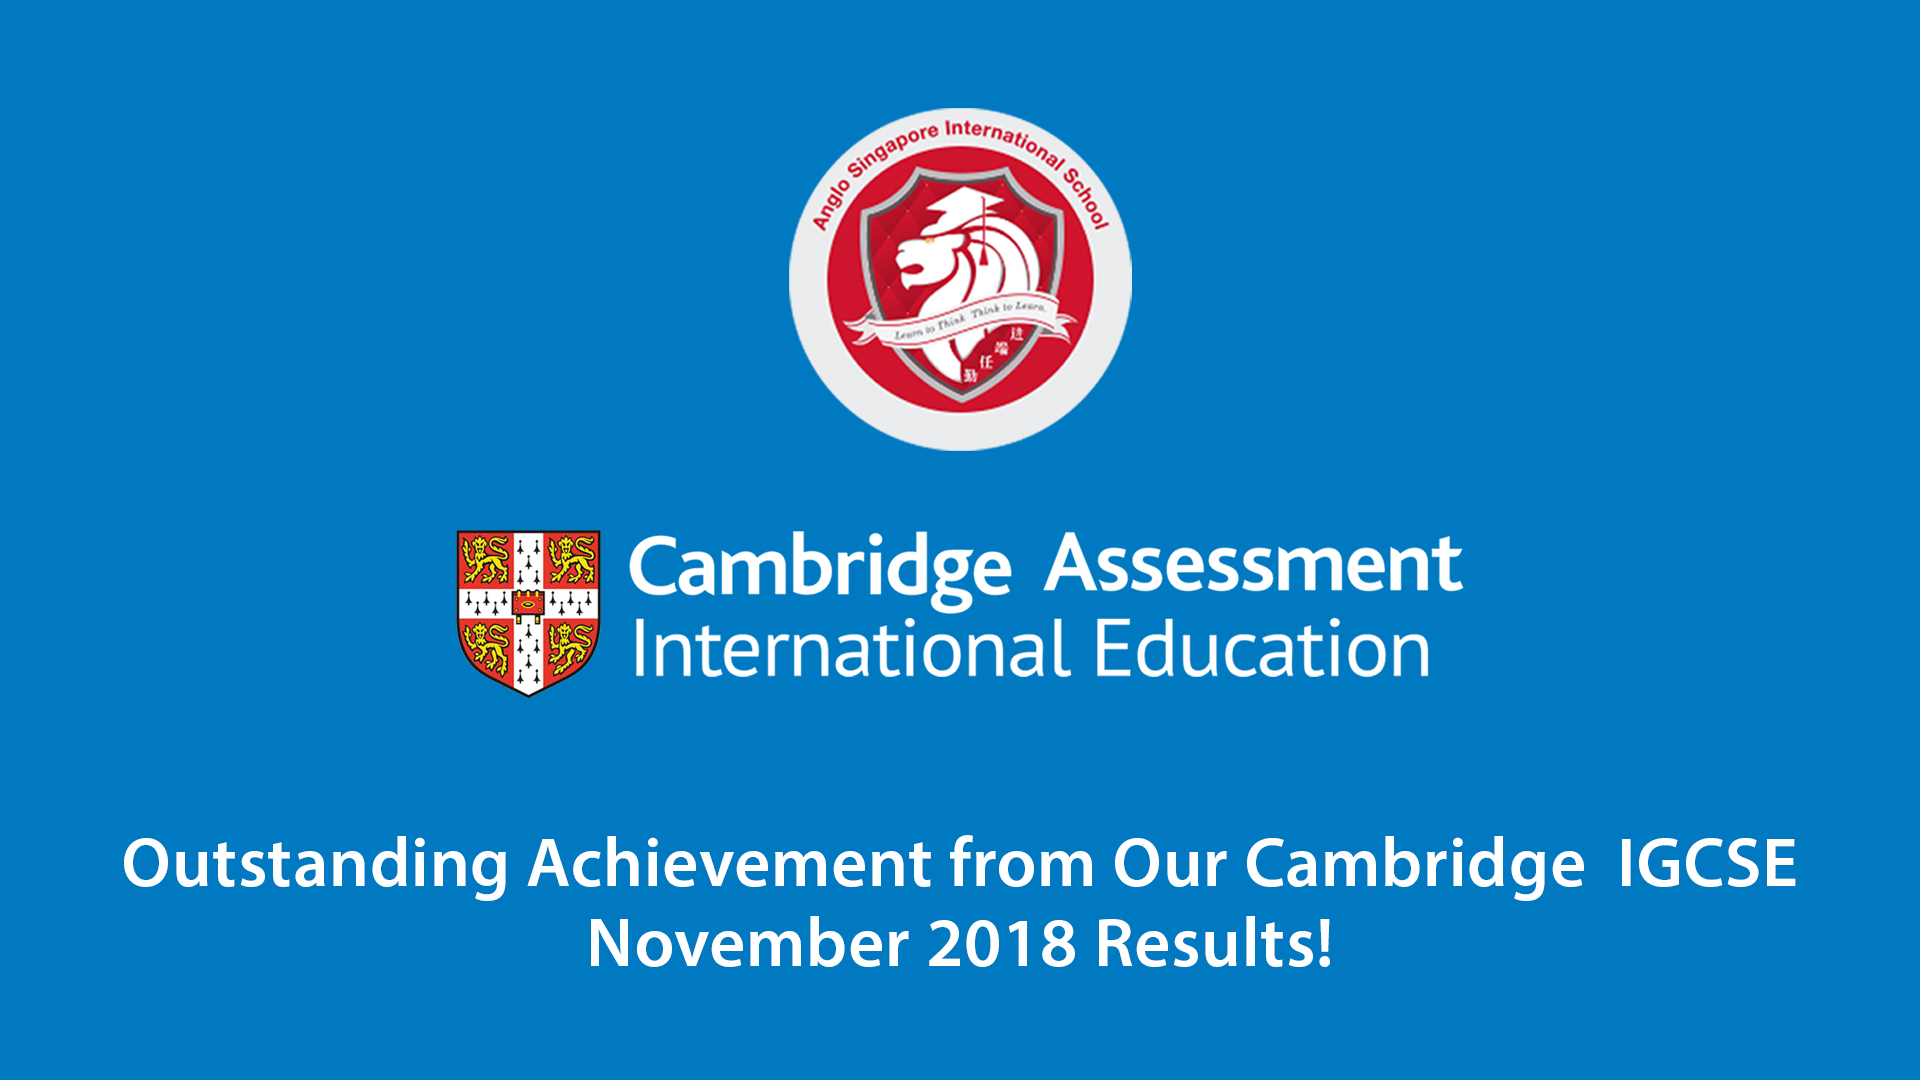 Outstanding Achievement from Our Cambridge Nov 2018 Results